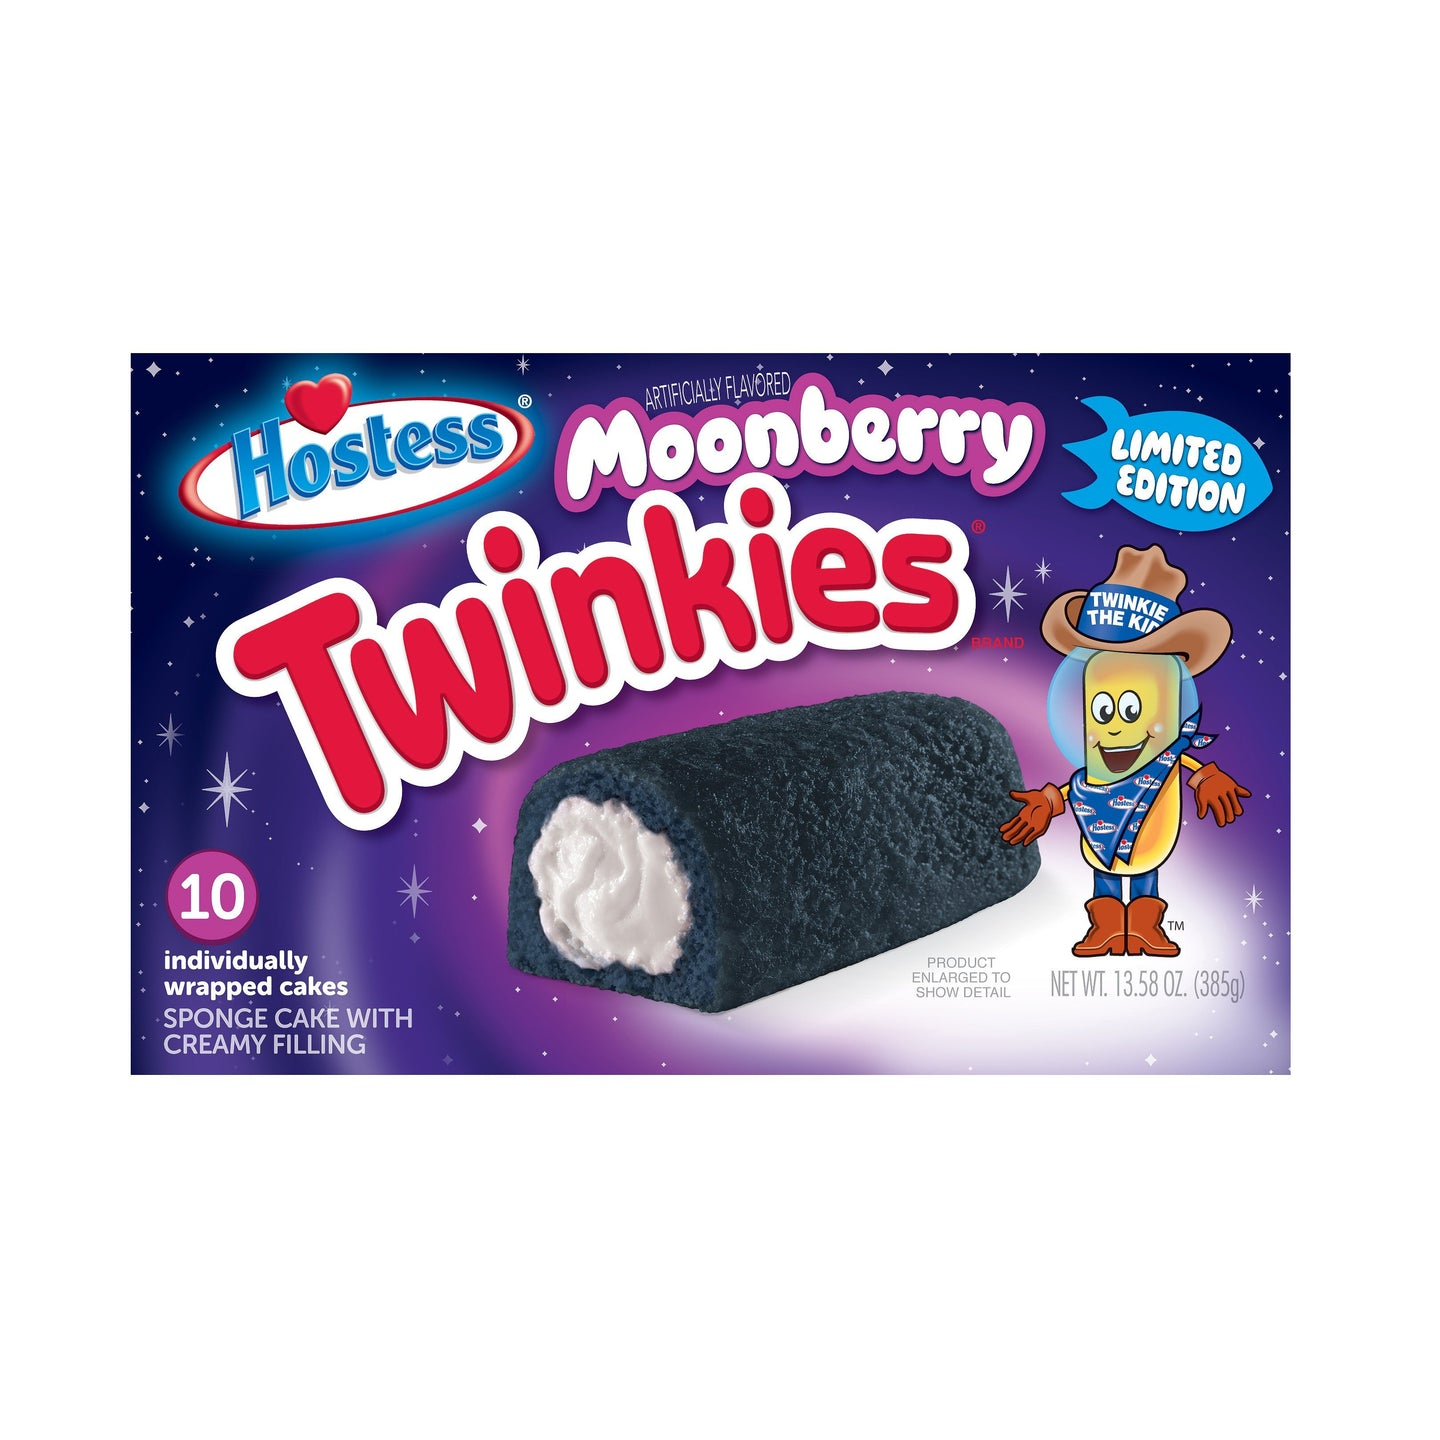 Hostess Moonberry Twinkies (Limited Edition)